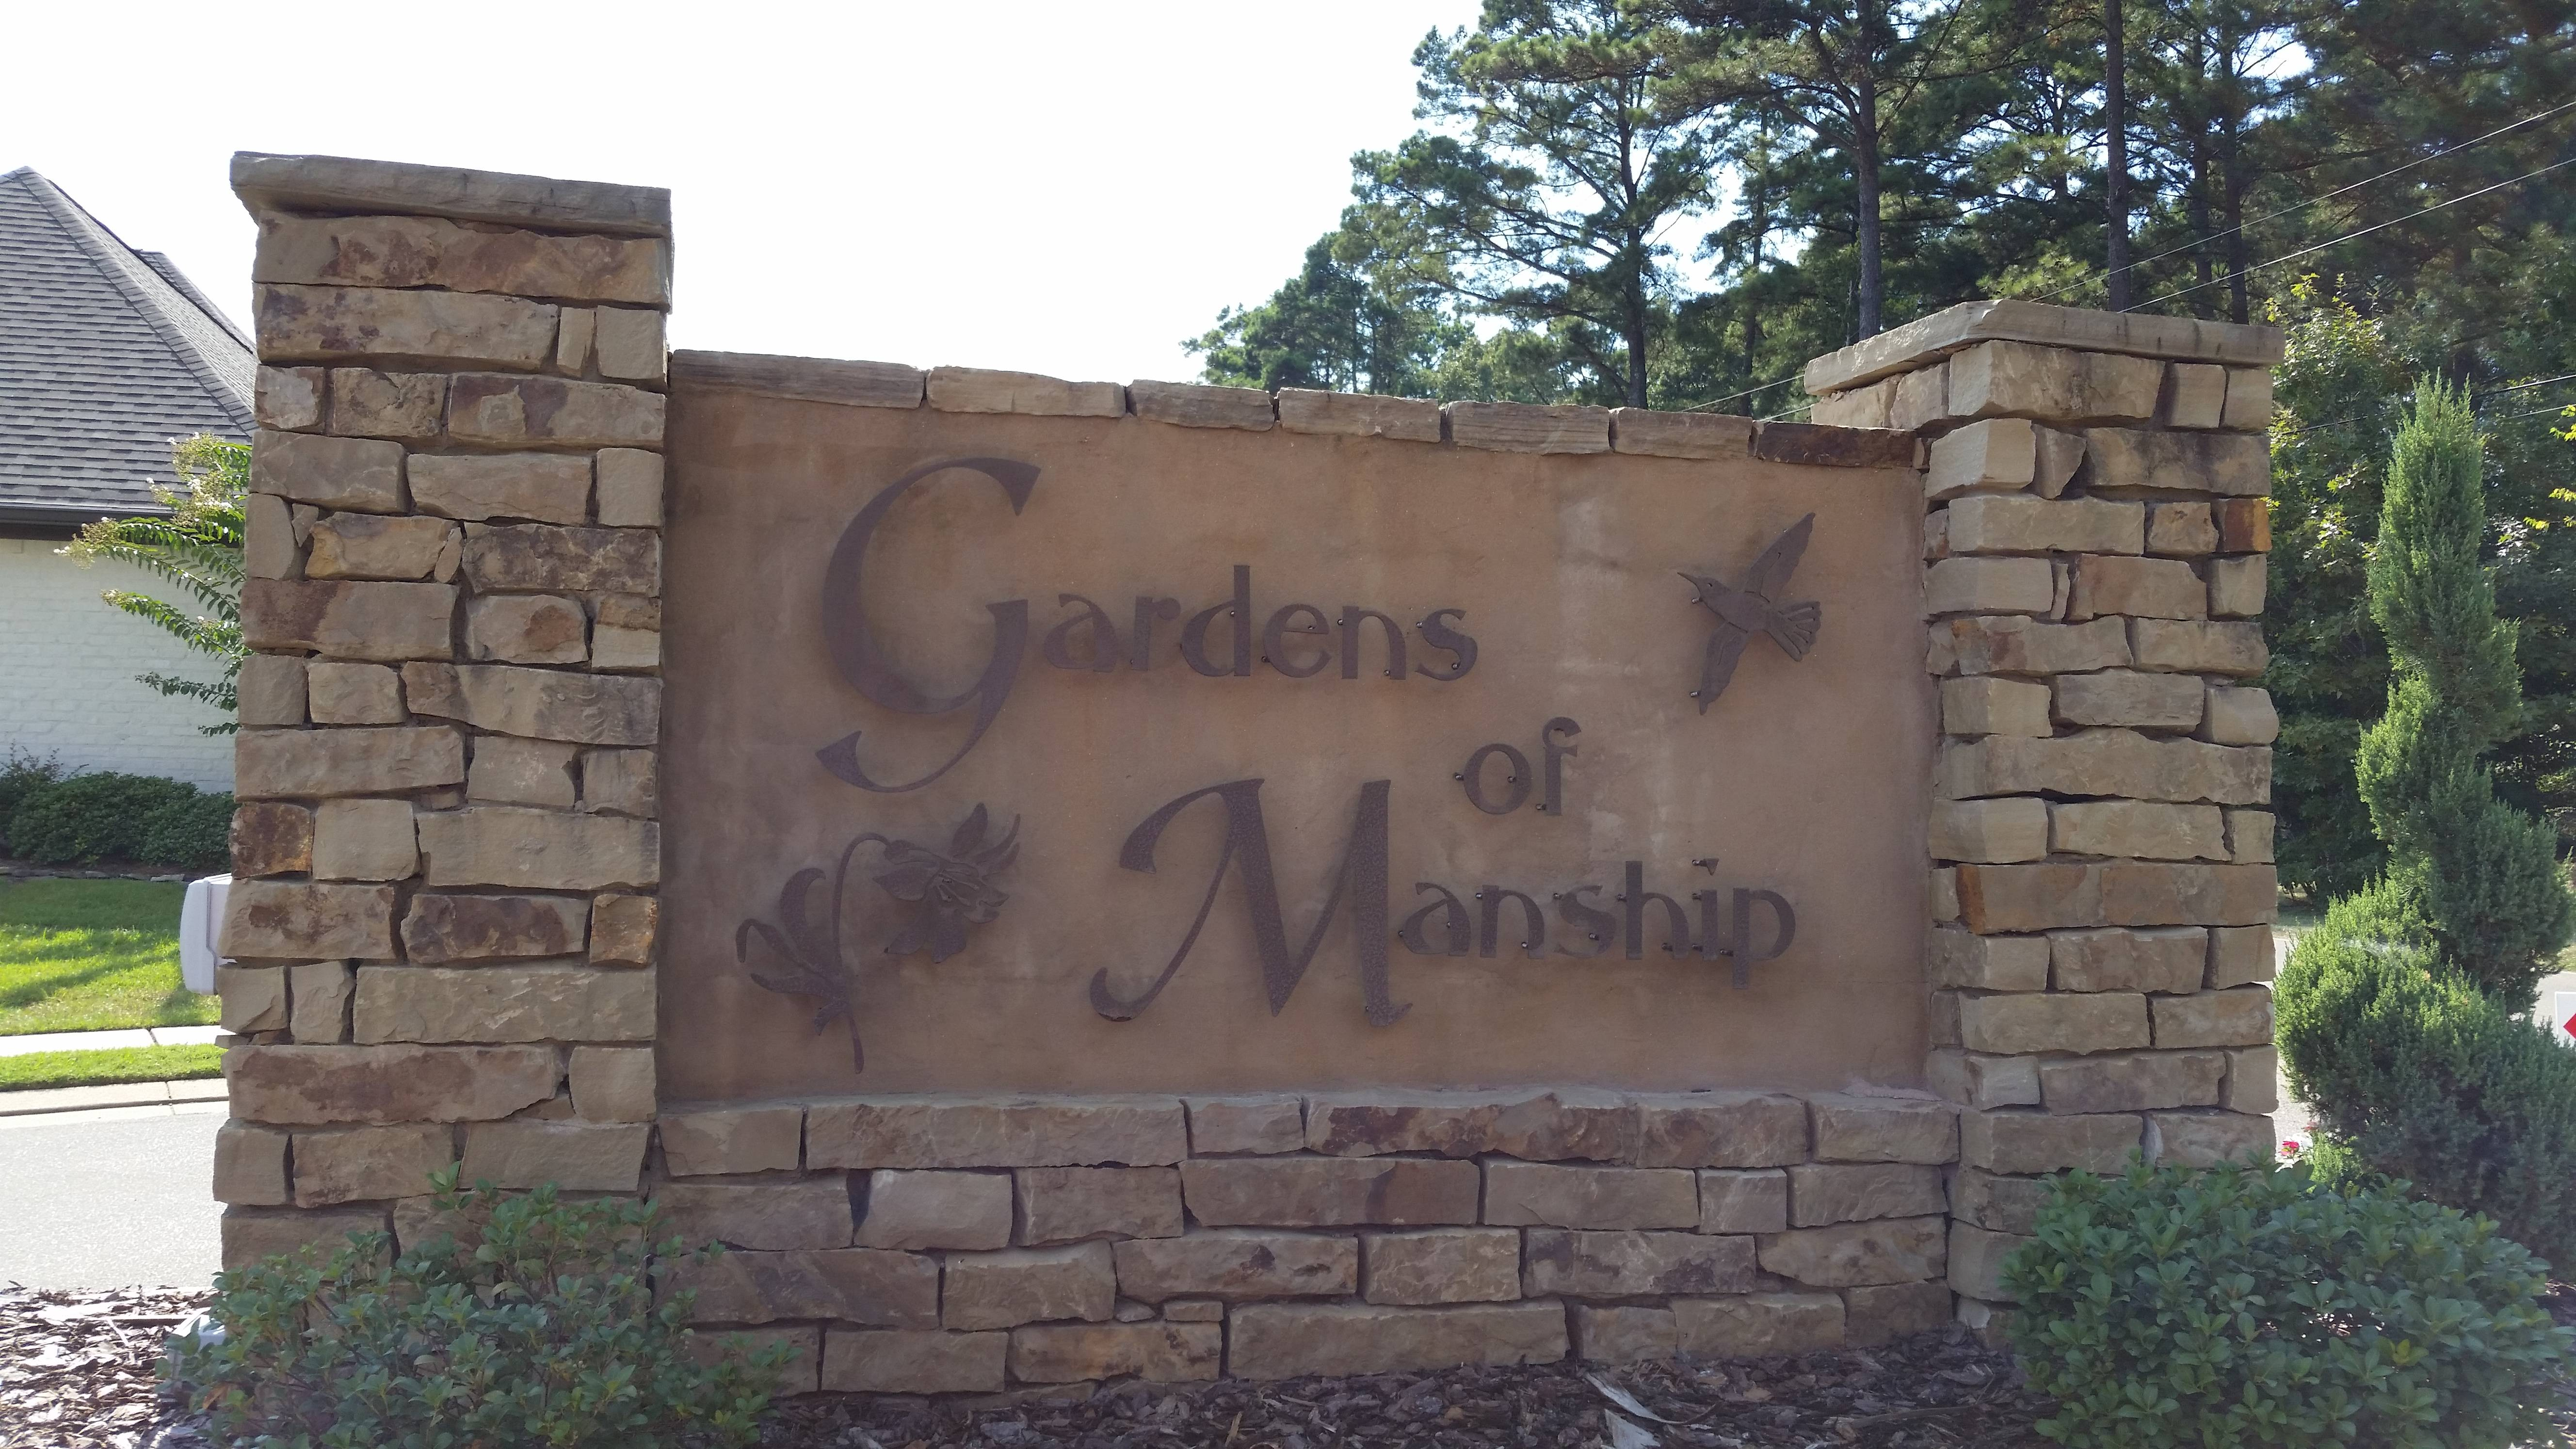 Gardens of Manship sign by Pat Starnes